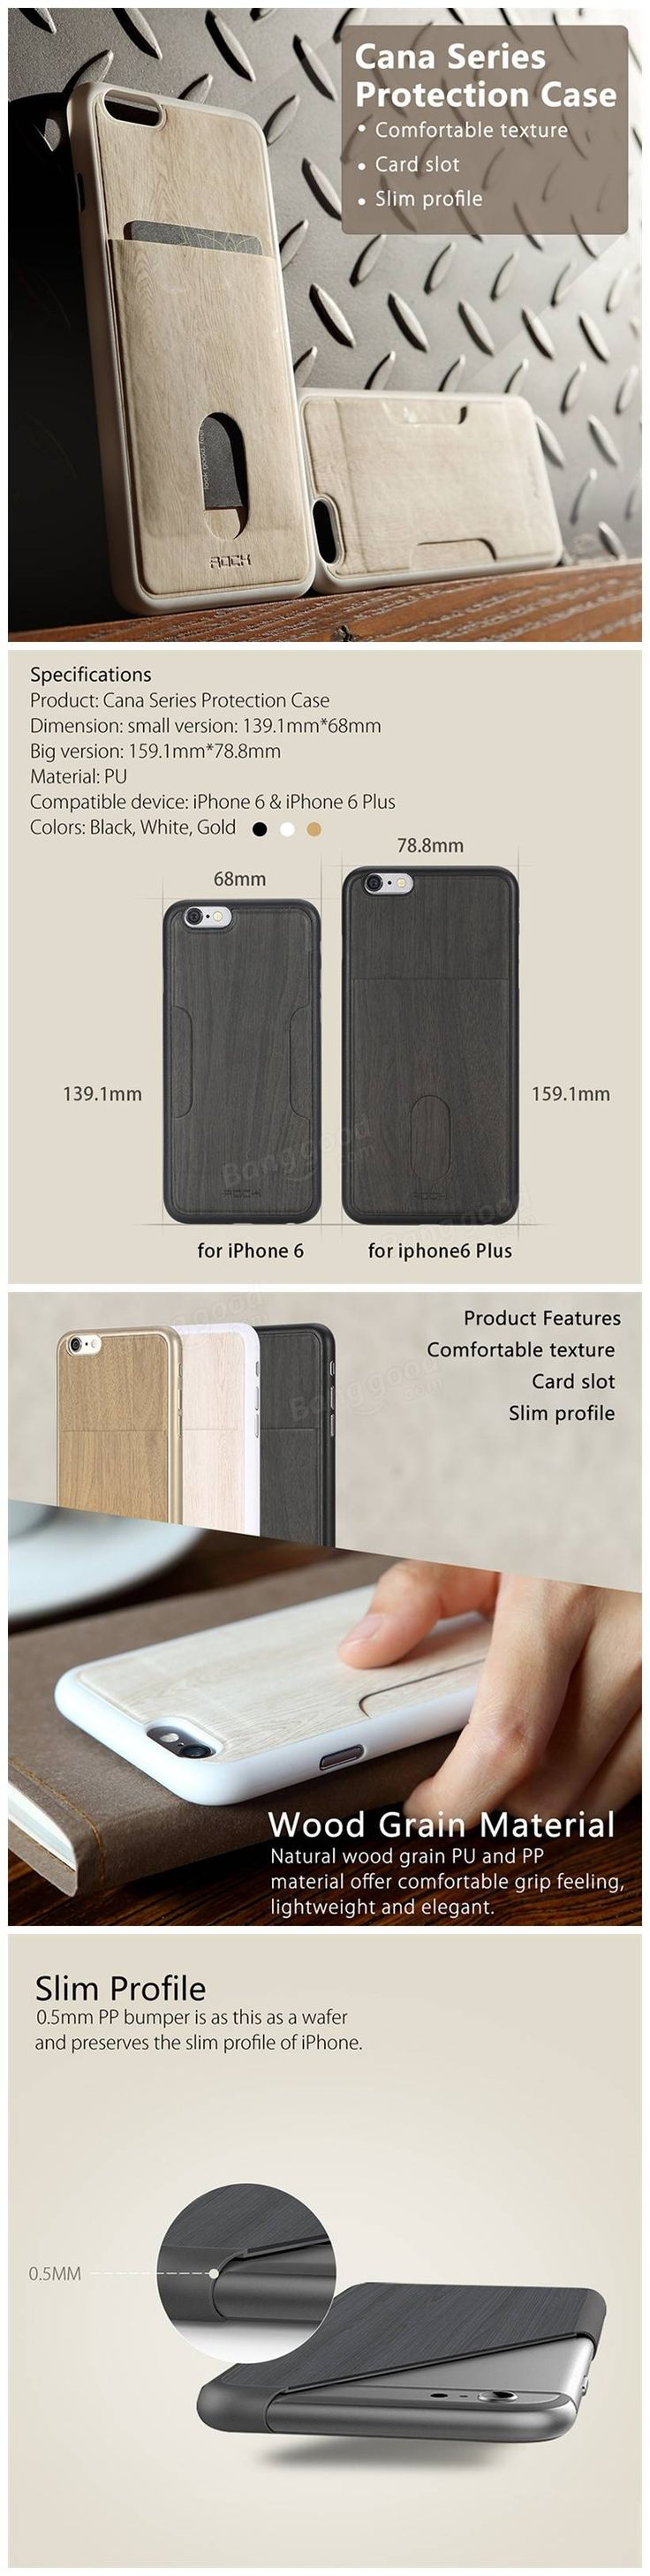 Only US$9.99, buy best ROCK Cana Series Wood Grain Leather Skin Phone Bag Vertical Card Slot Case For iPhone 6 6s Plus sale online store at wholesale price.US/EU direct.